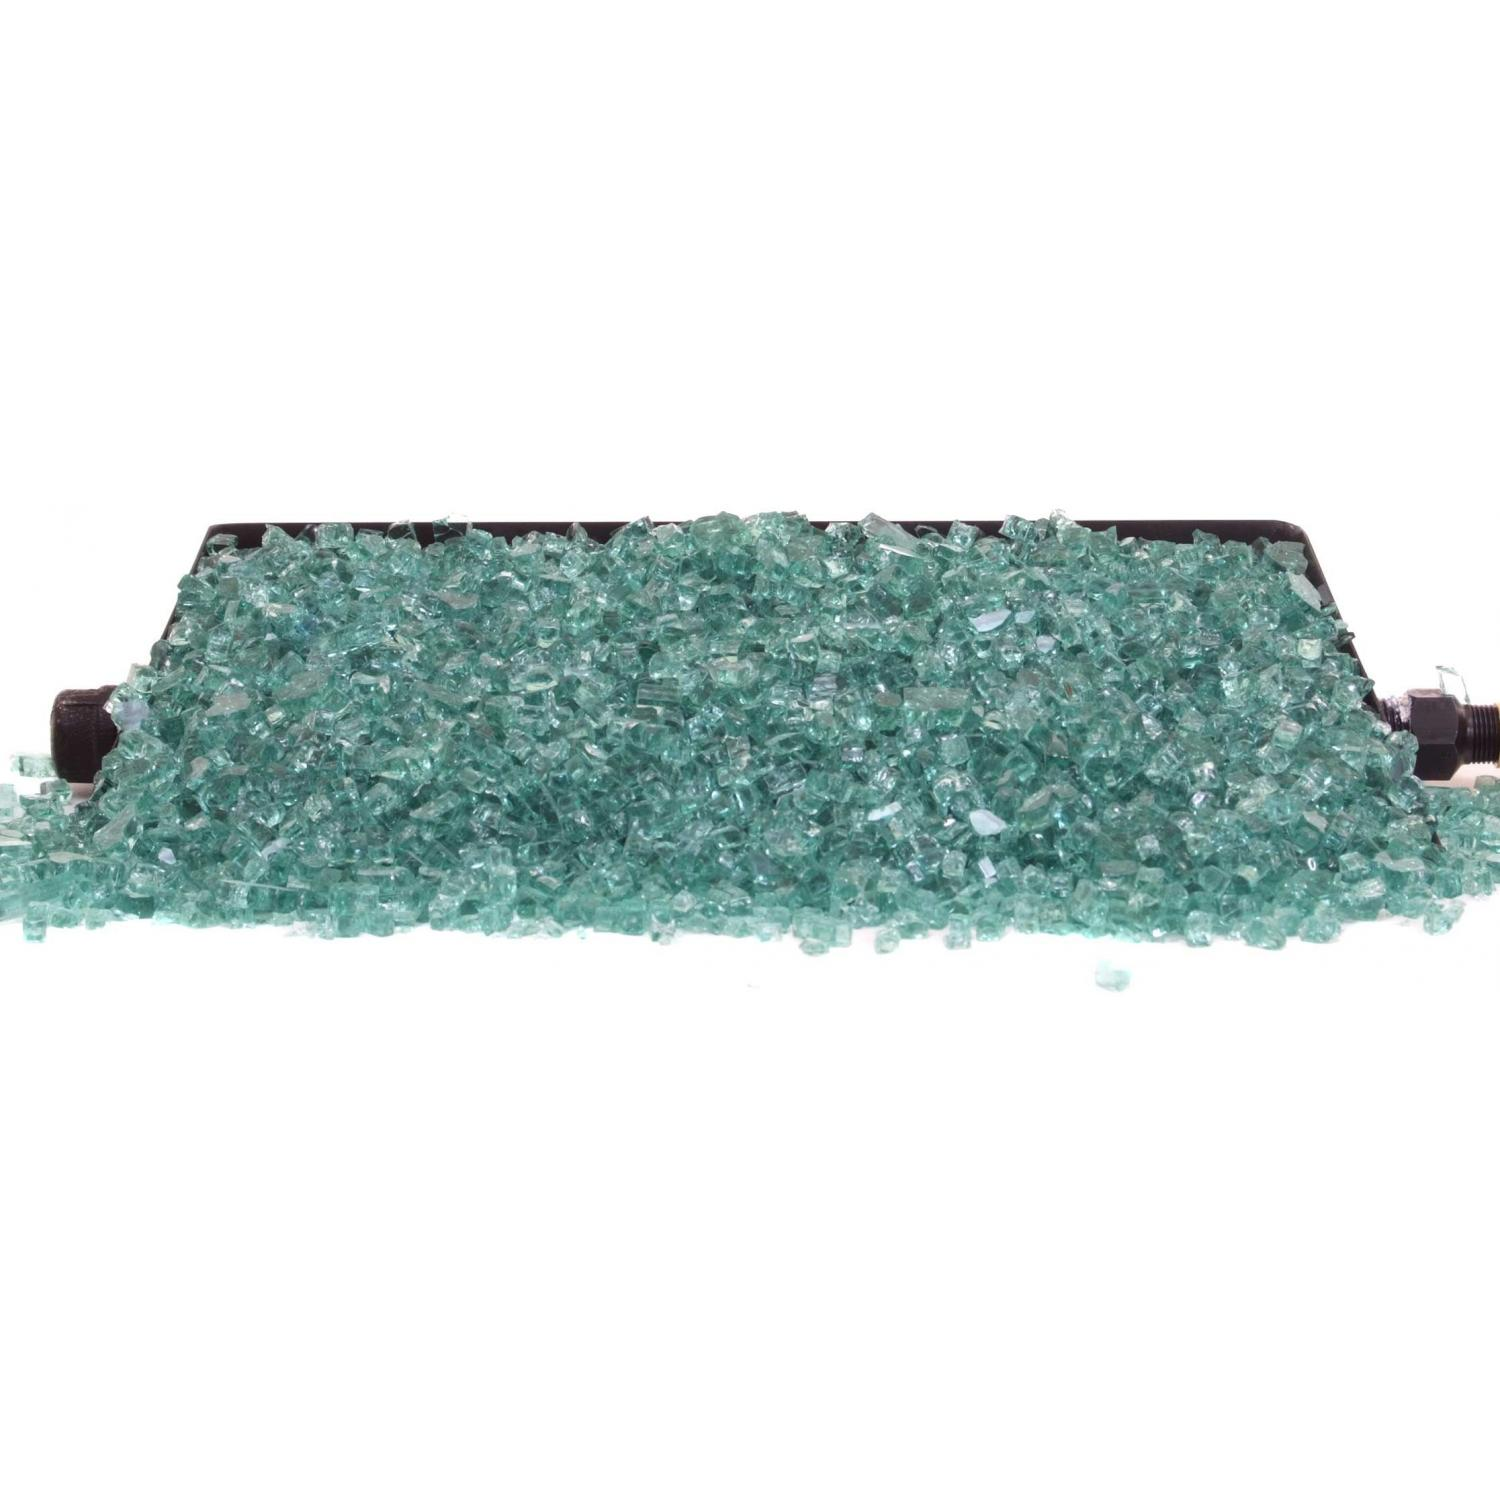 Picture of Peterson Fyre Glass 16 Inch Emerald Fire Glass Set With Vented Propane G45 Burner - Manual Safety Pilot